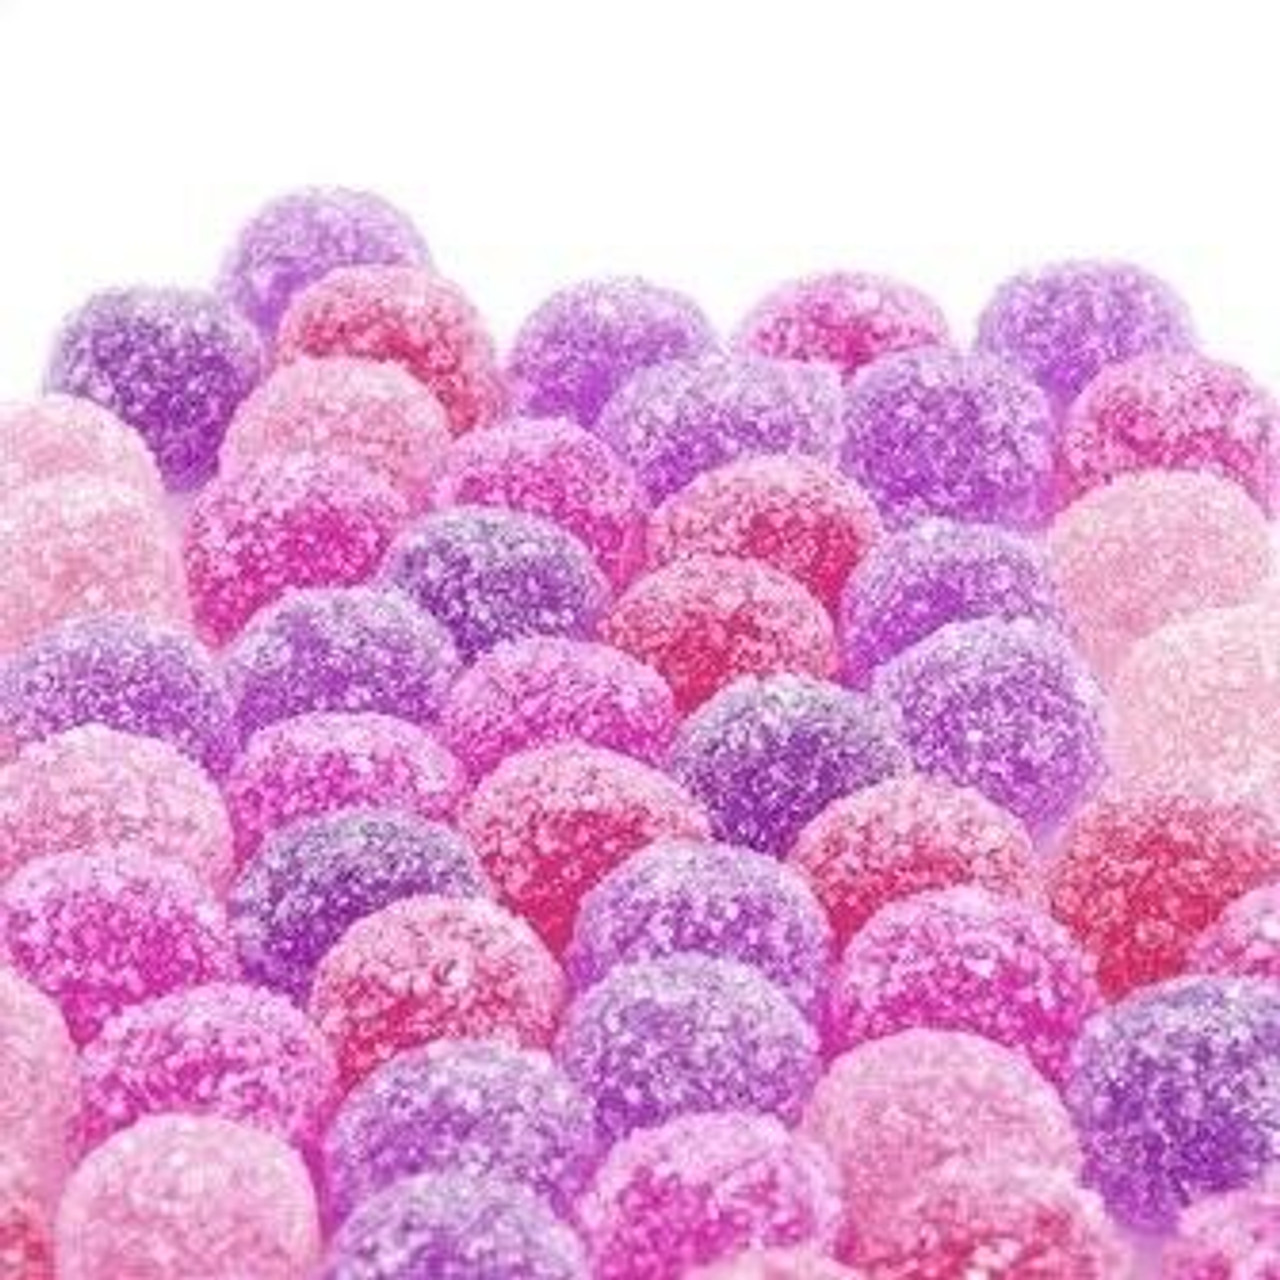 Kandi-Hed Flavours PLUM SOUR KH